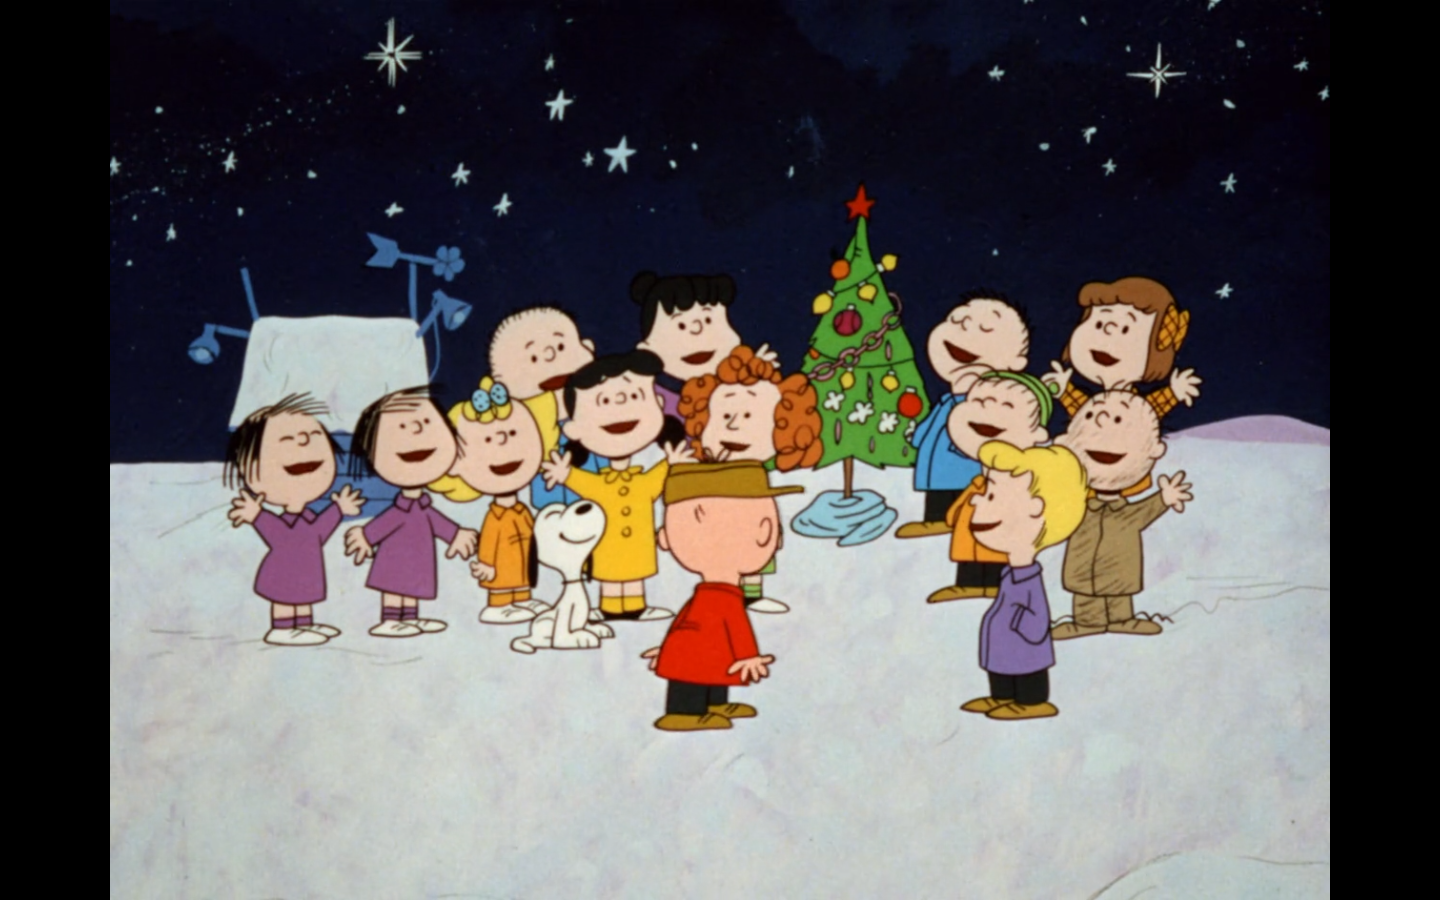 URL httppintawcomcharlie brown christmas desktop wallpaper 1440x900